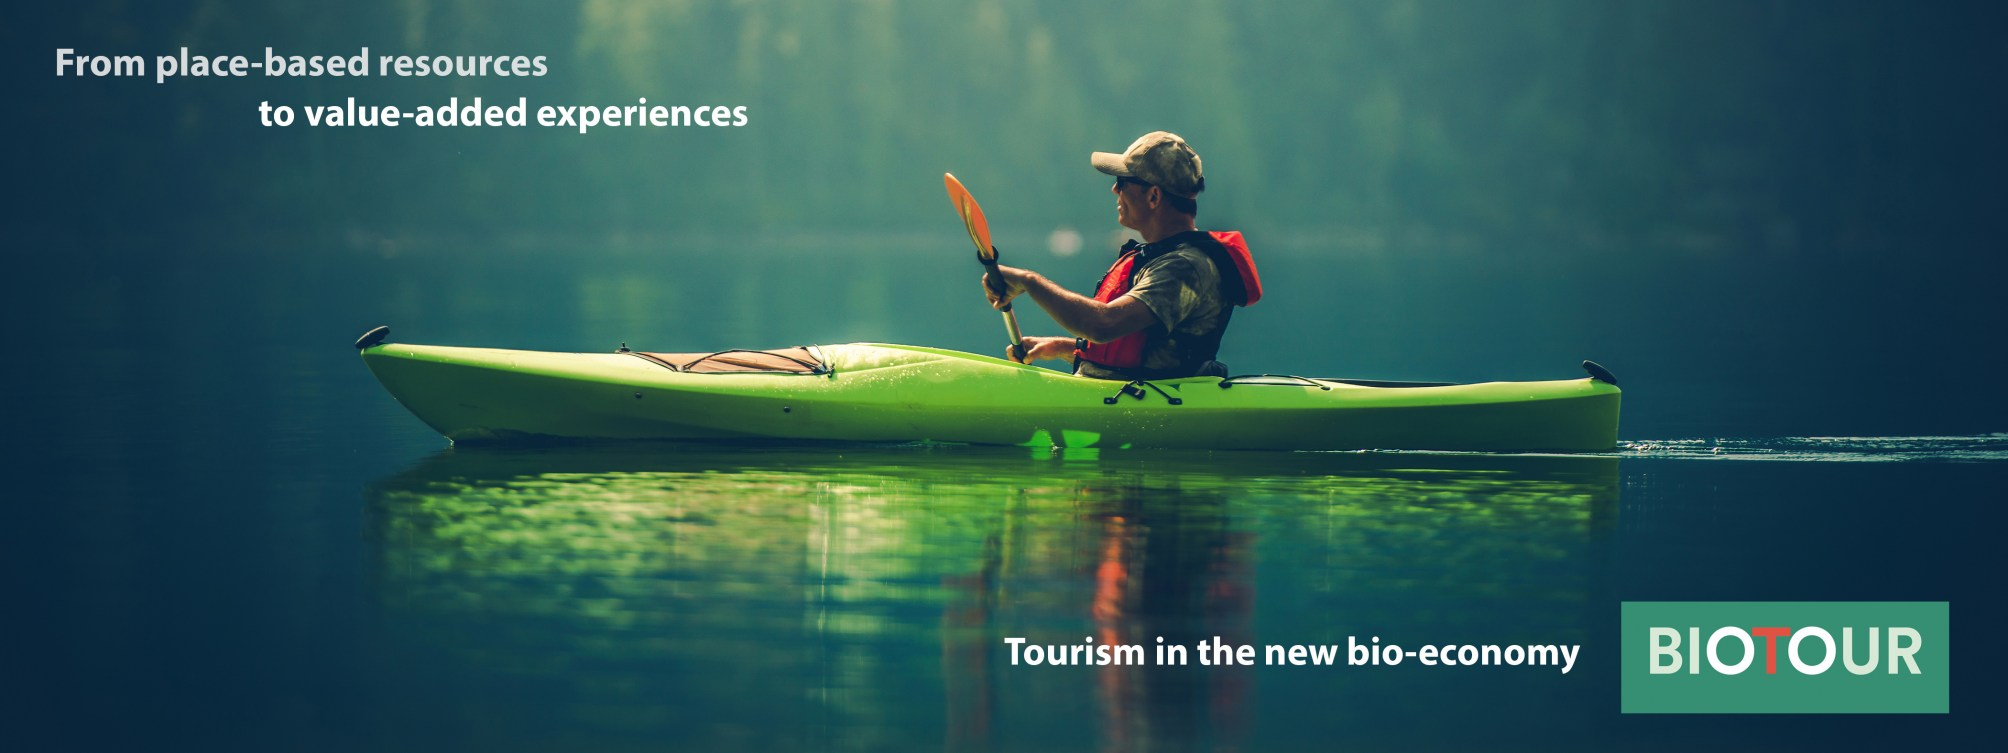 Naturebased tourism in the new bio-economy